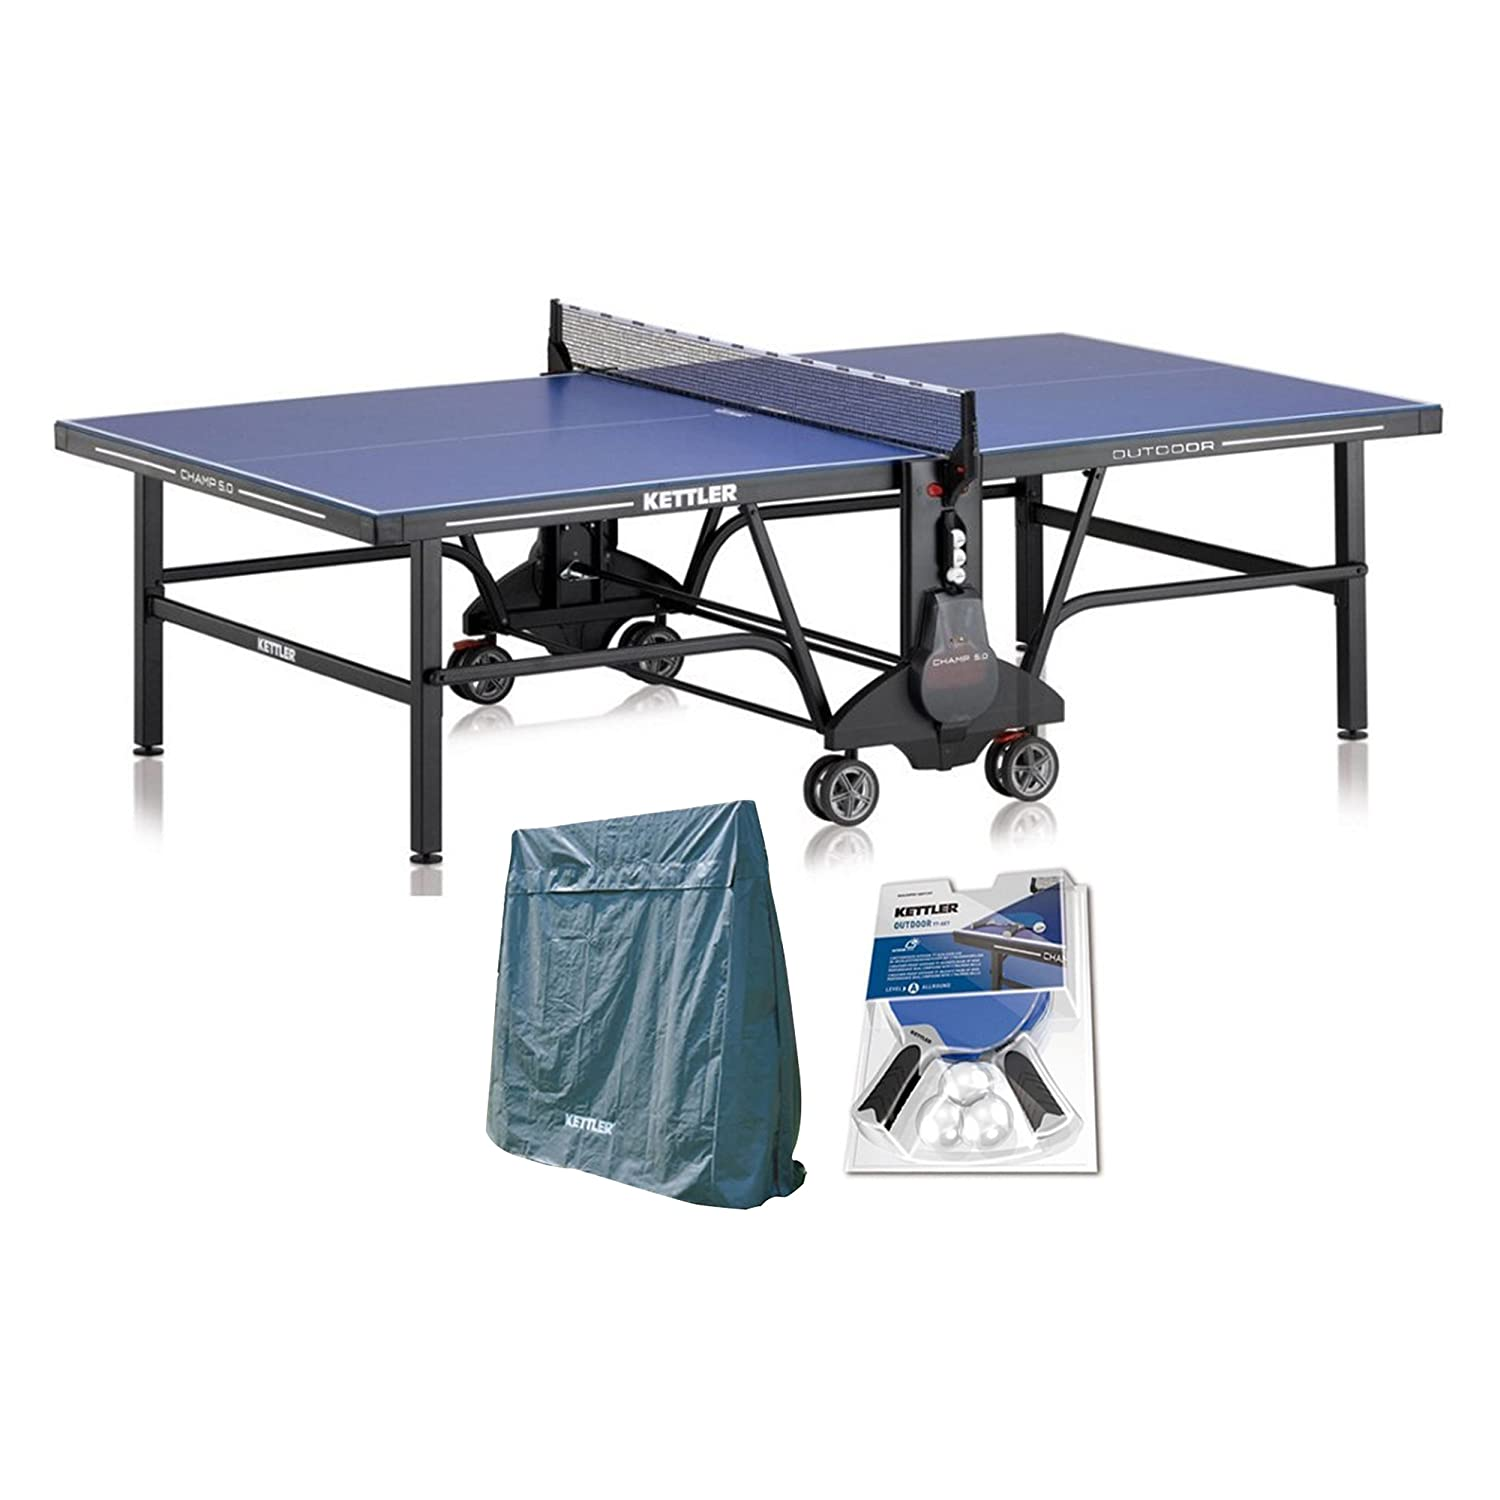 Kettler Champ 5.0 – Best Outdoor Ping-pong Table